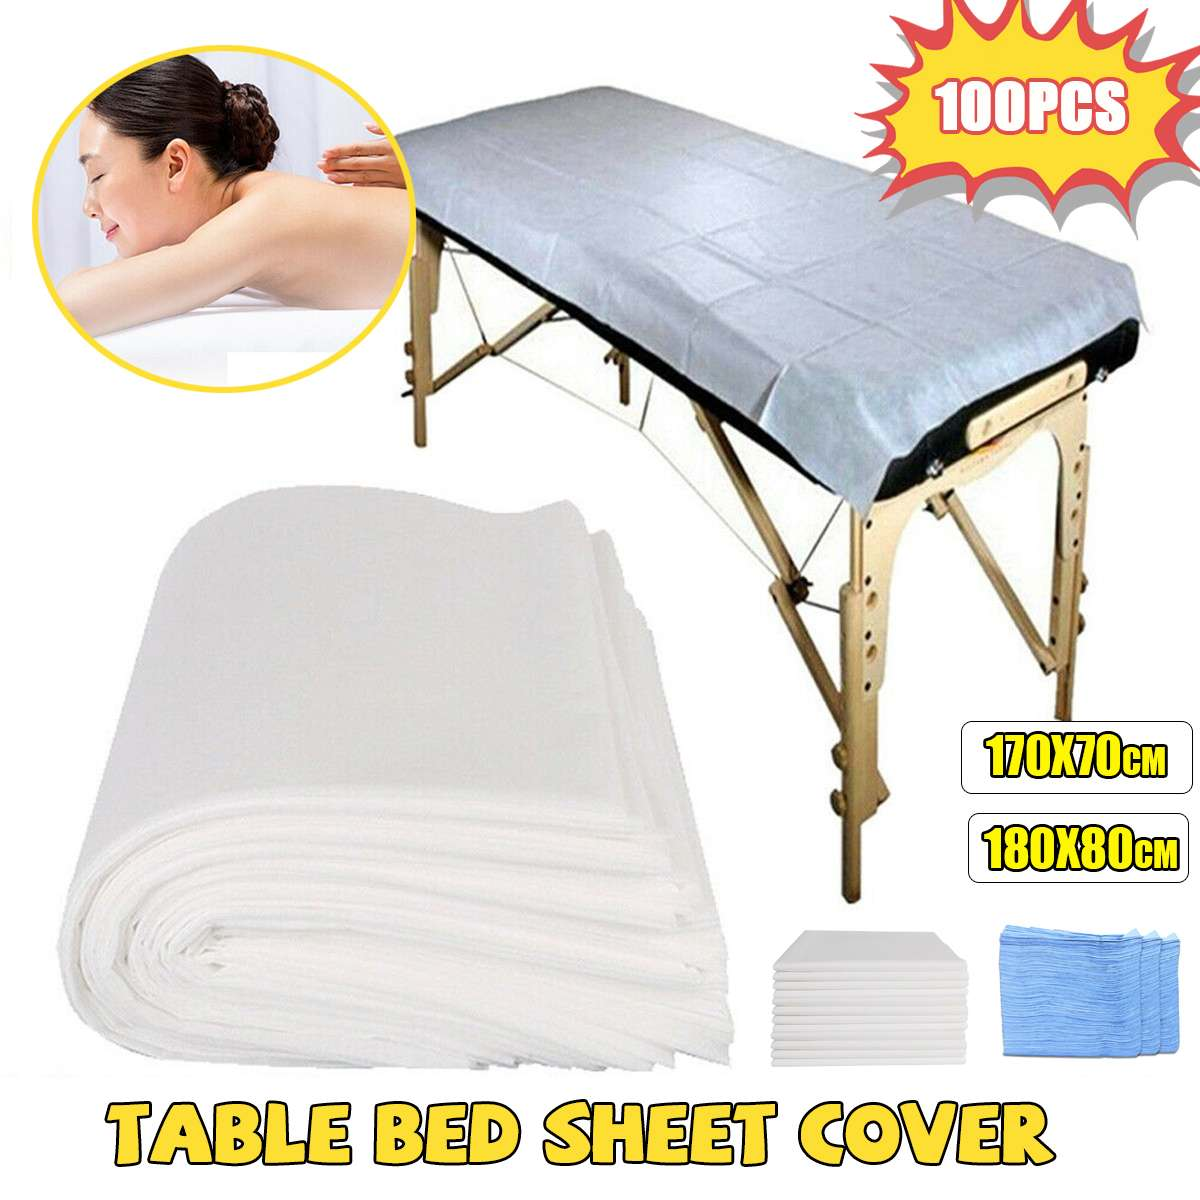 100PCS Disposable Non-woven Bed Pads Cover Sheets Massage Beauty Home Care Non-woven Fabric 80x180cm